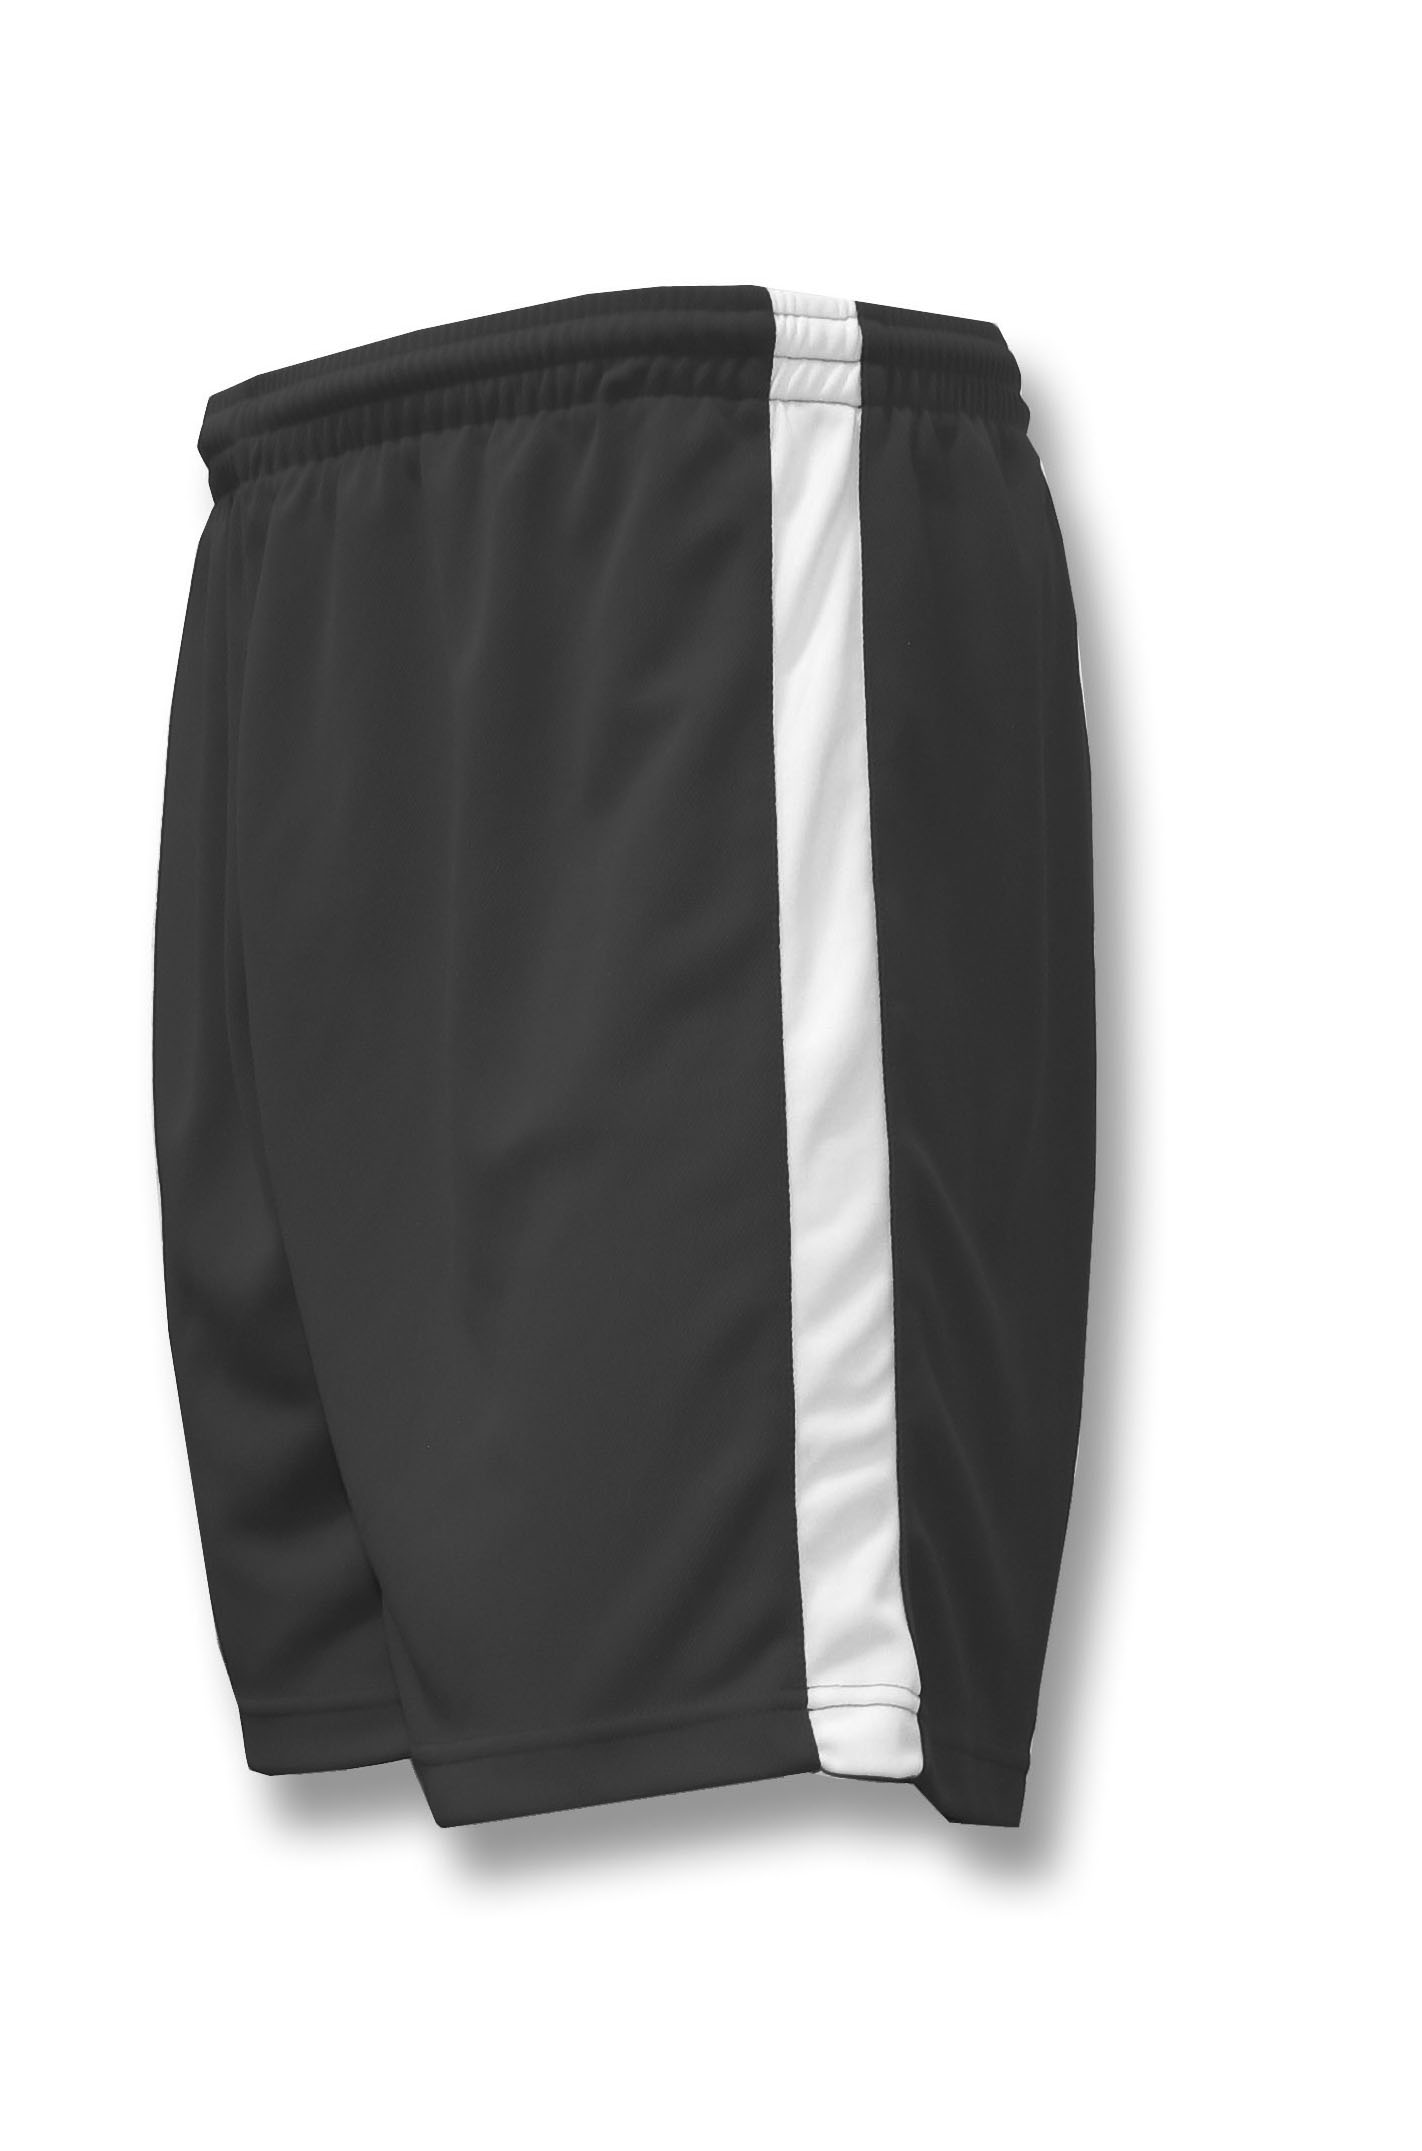 Sweeper / Cobra soccer shorts in black by Code Four Athletics